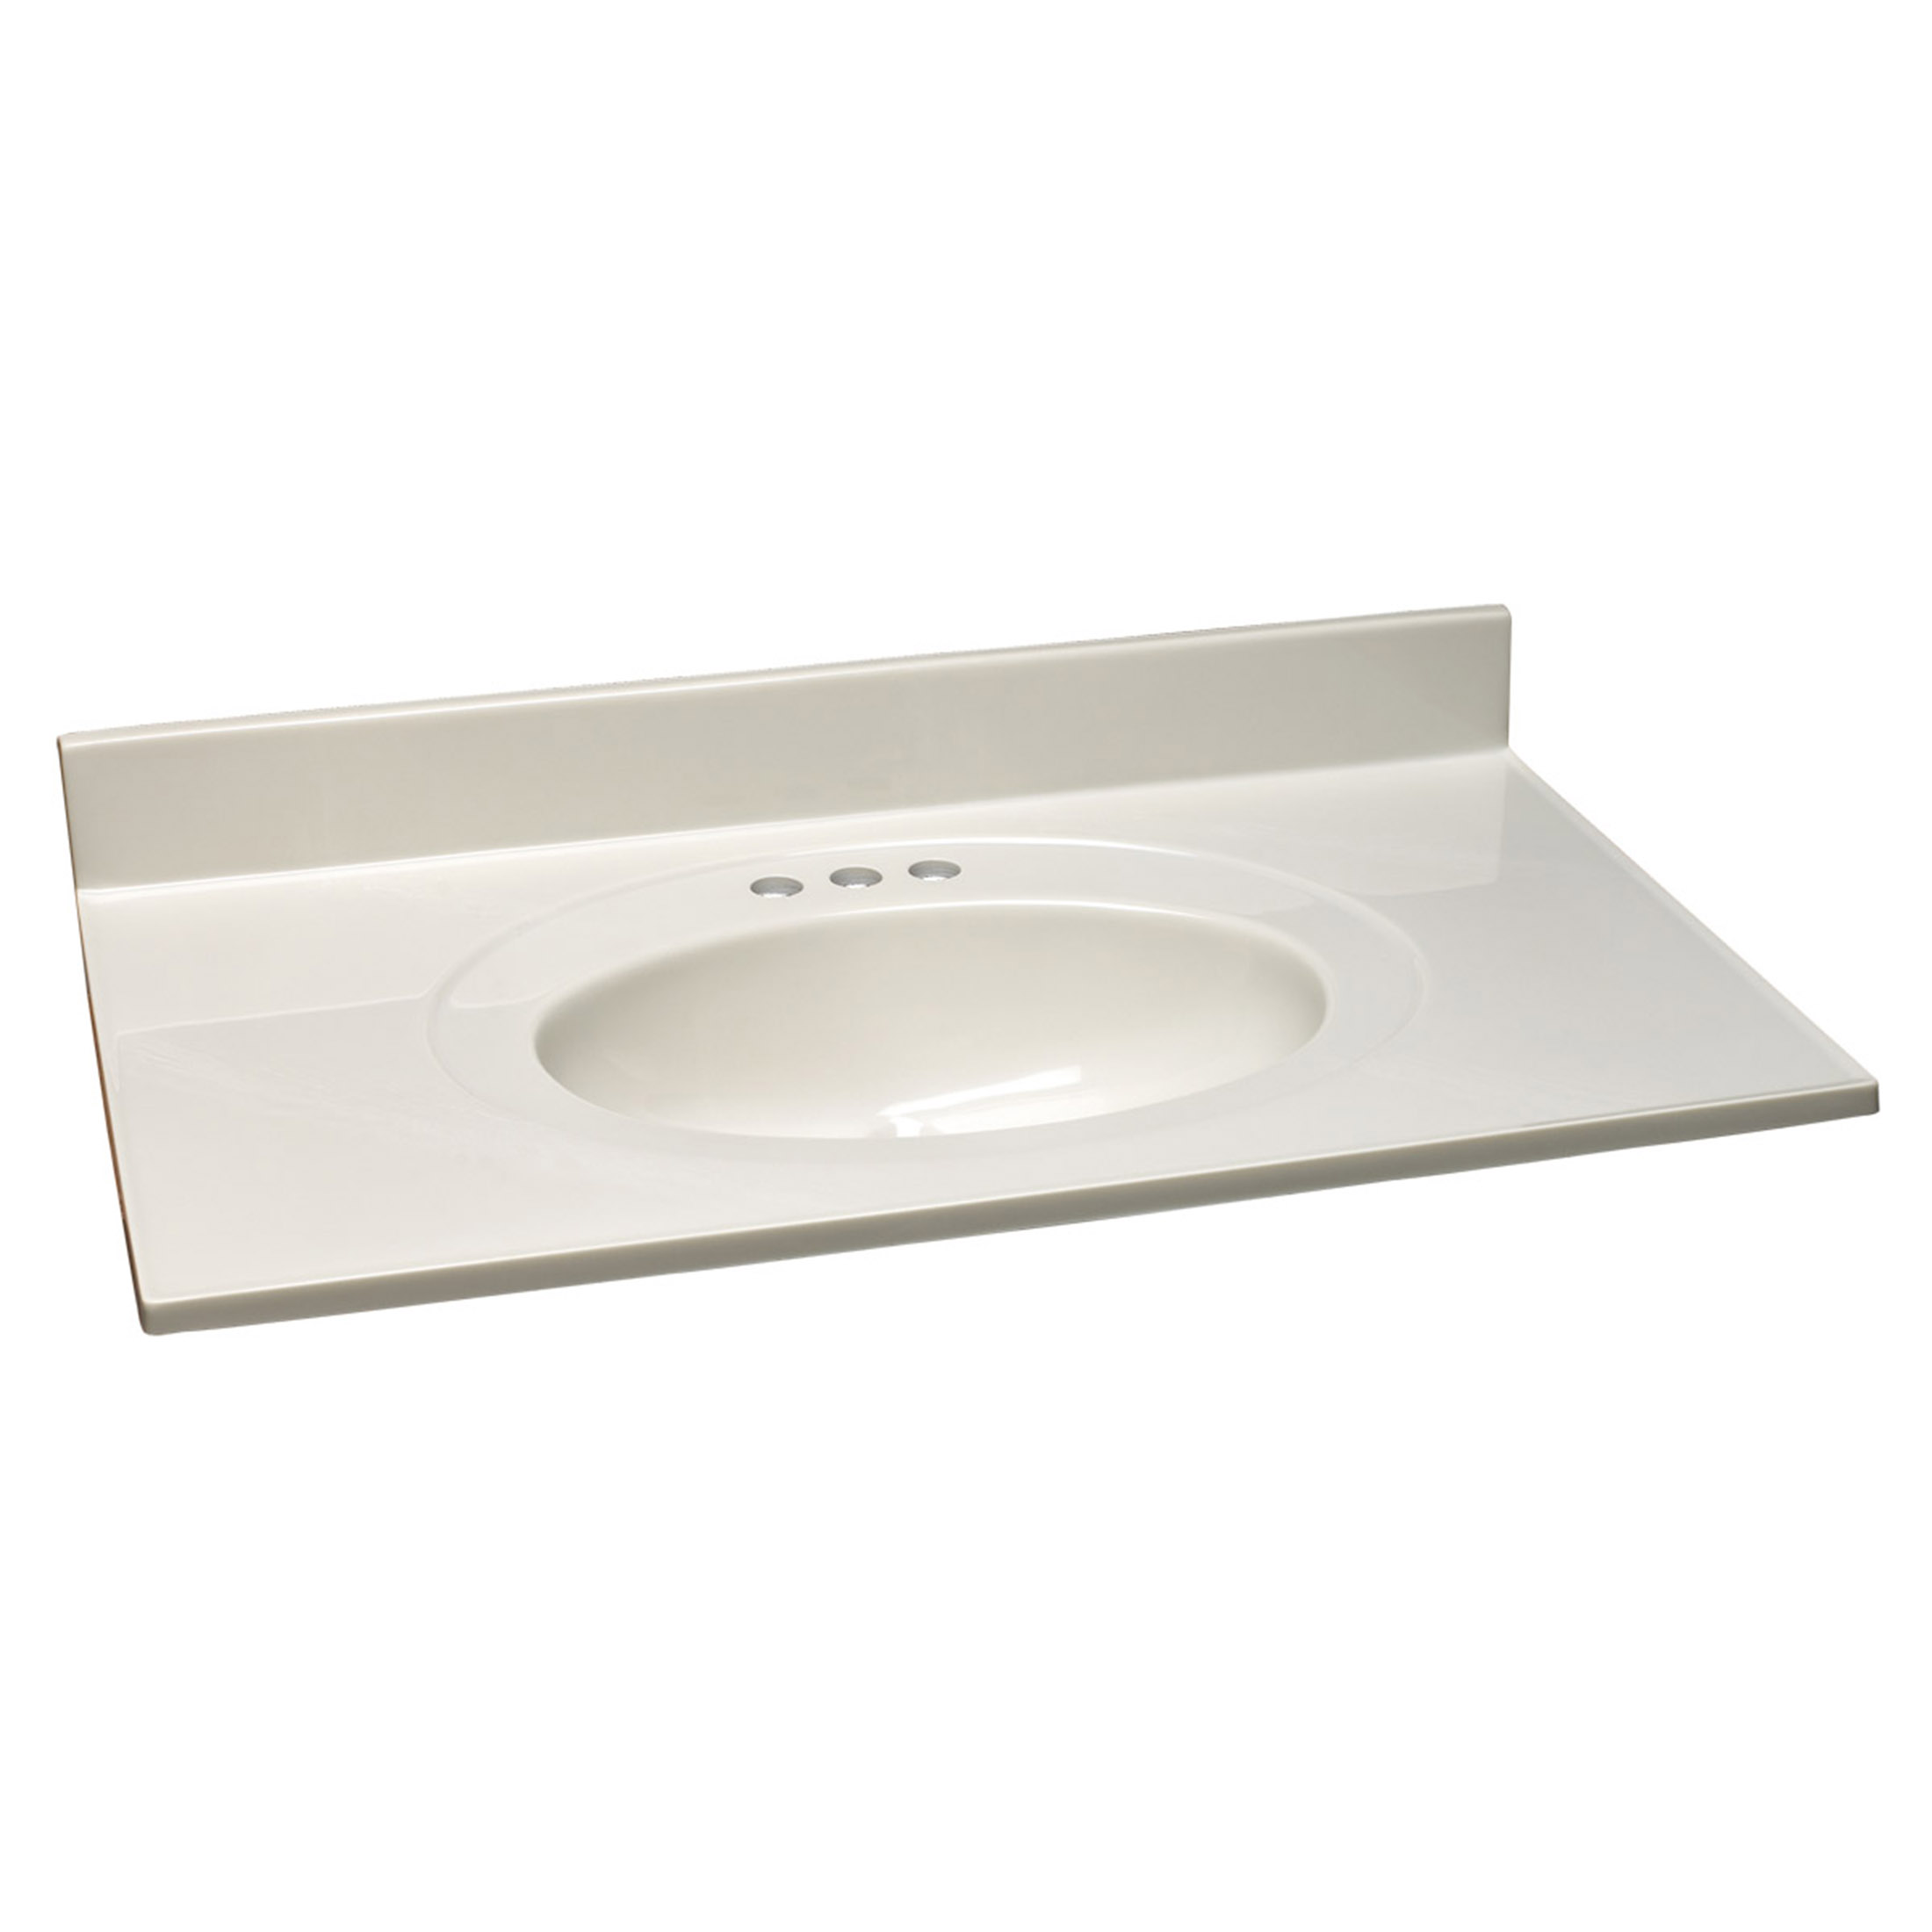 Single Bowl Marble Vanity Top, 49-Inch by 19-Inch, White